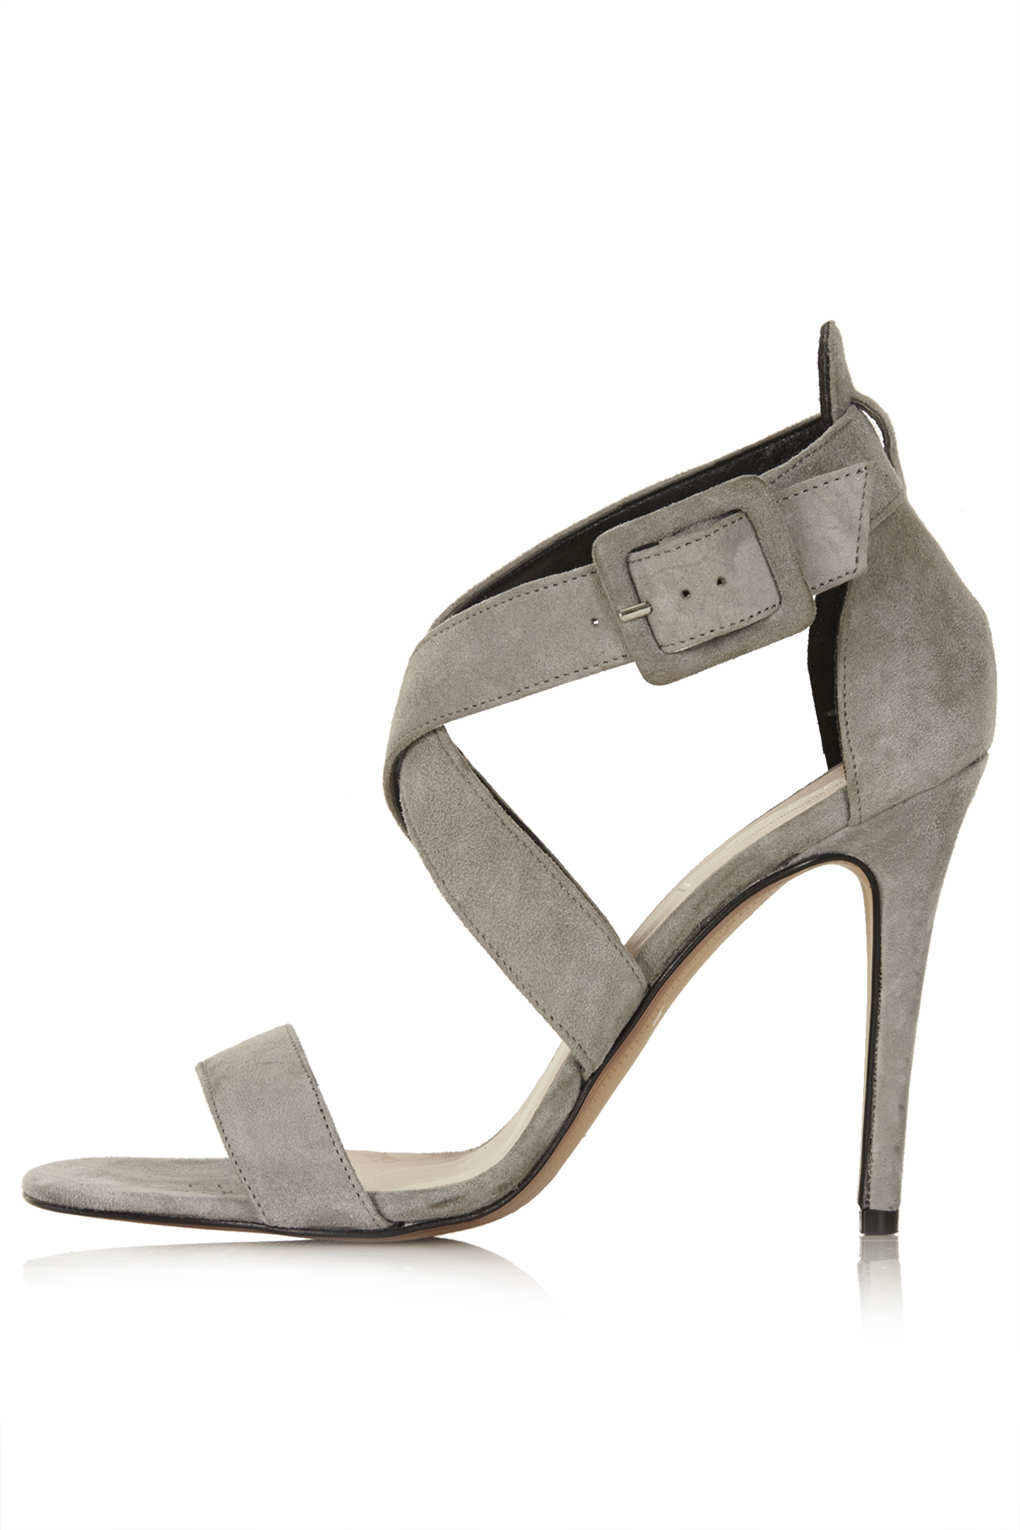 Topshop Rustle Suede Strappy Heels in Gray | Lyst